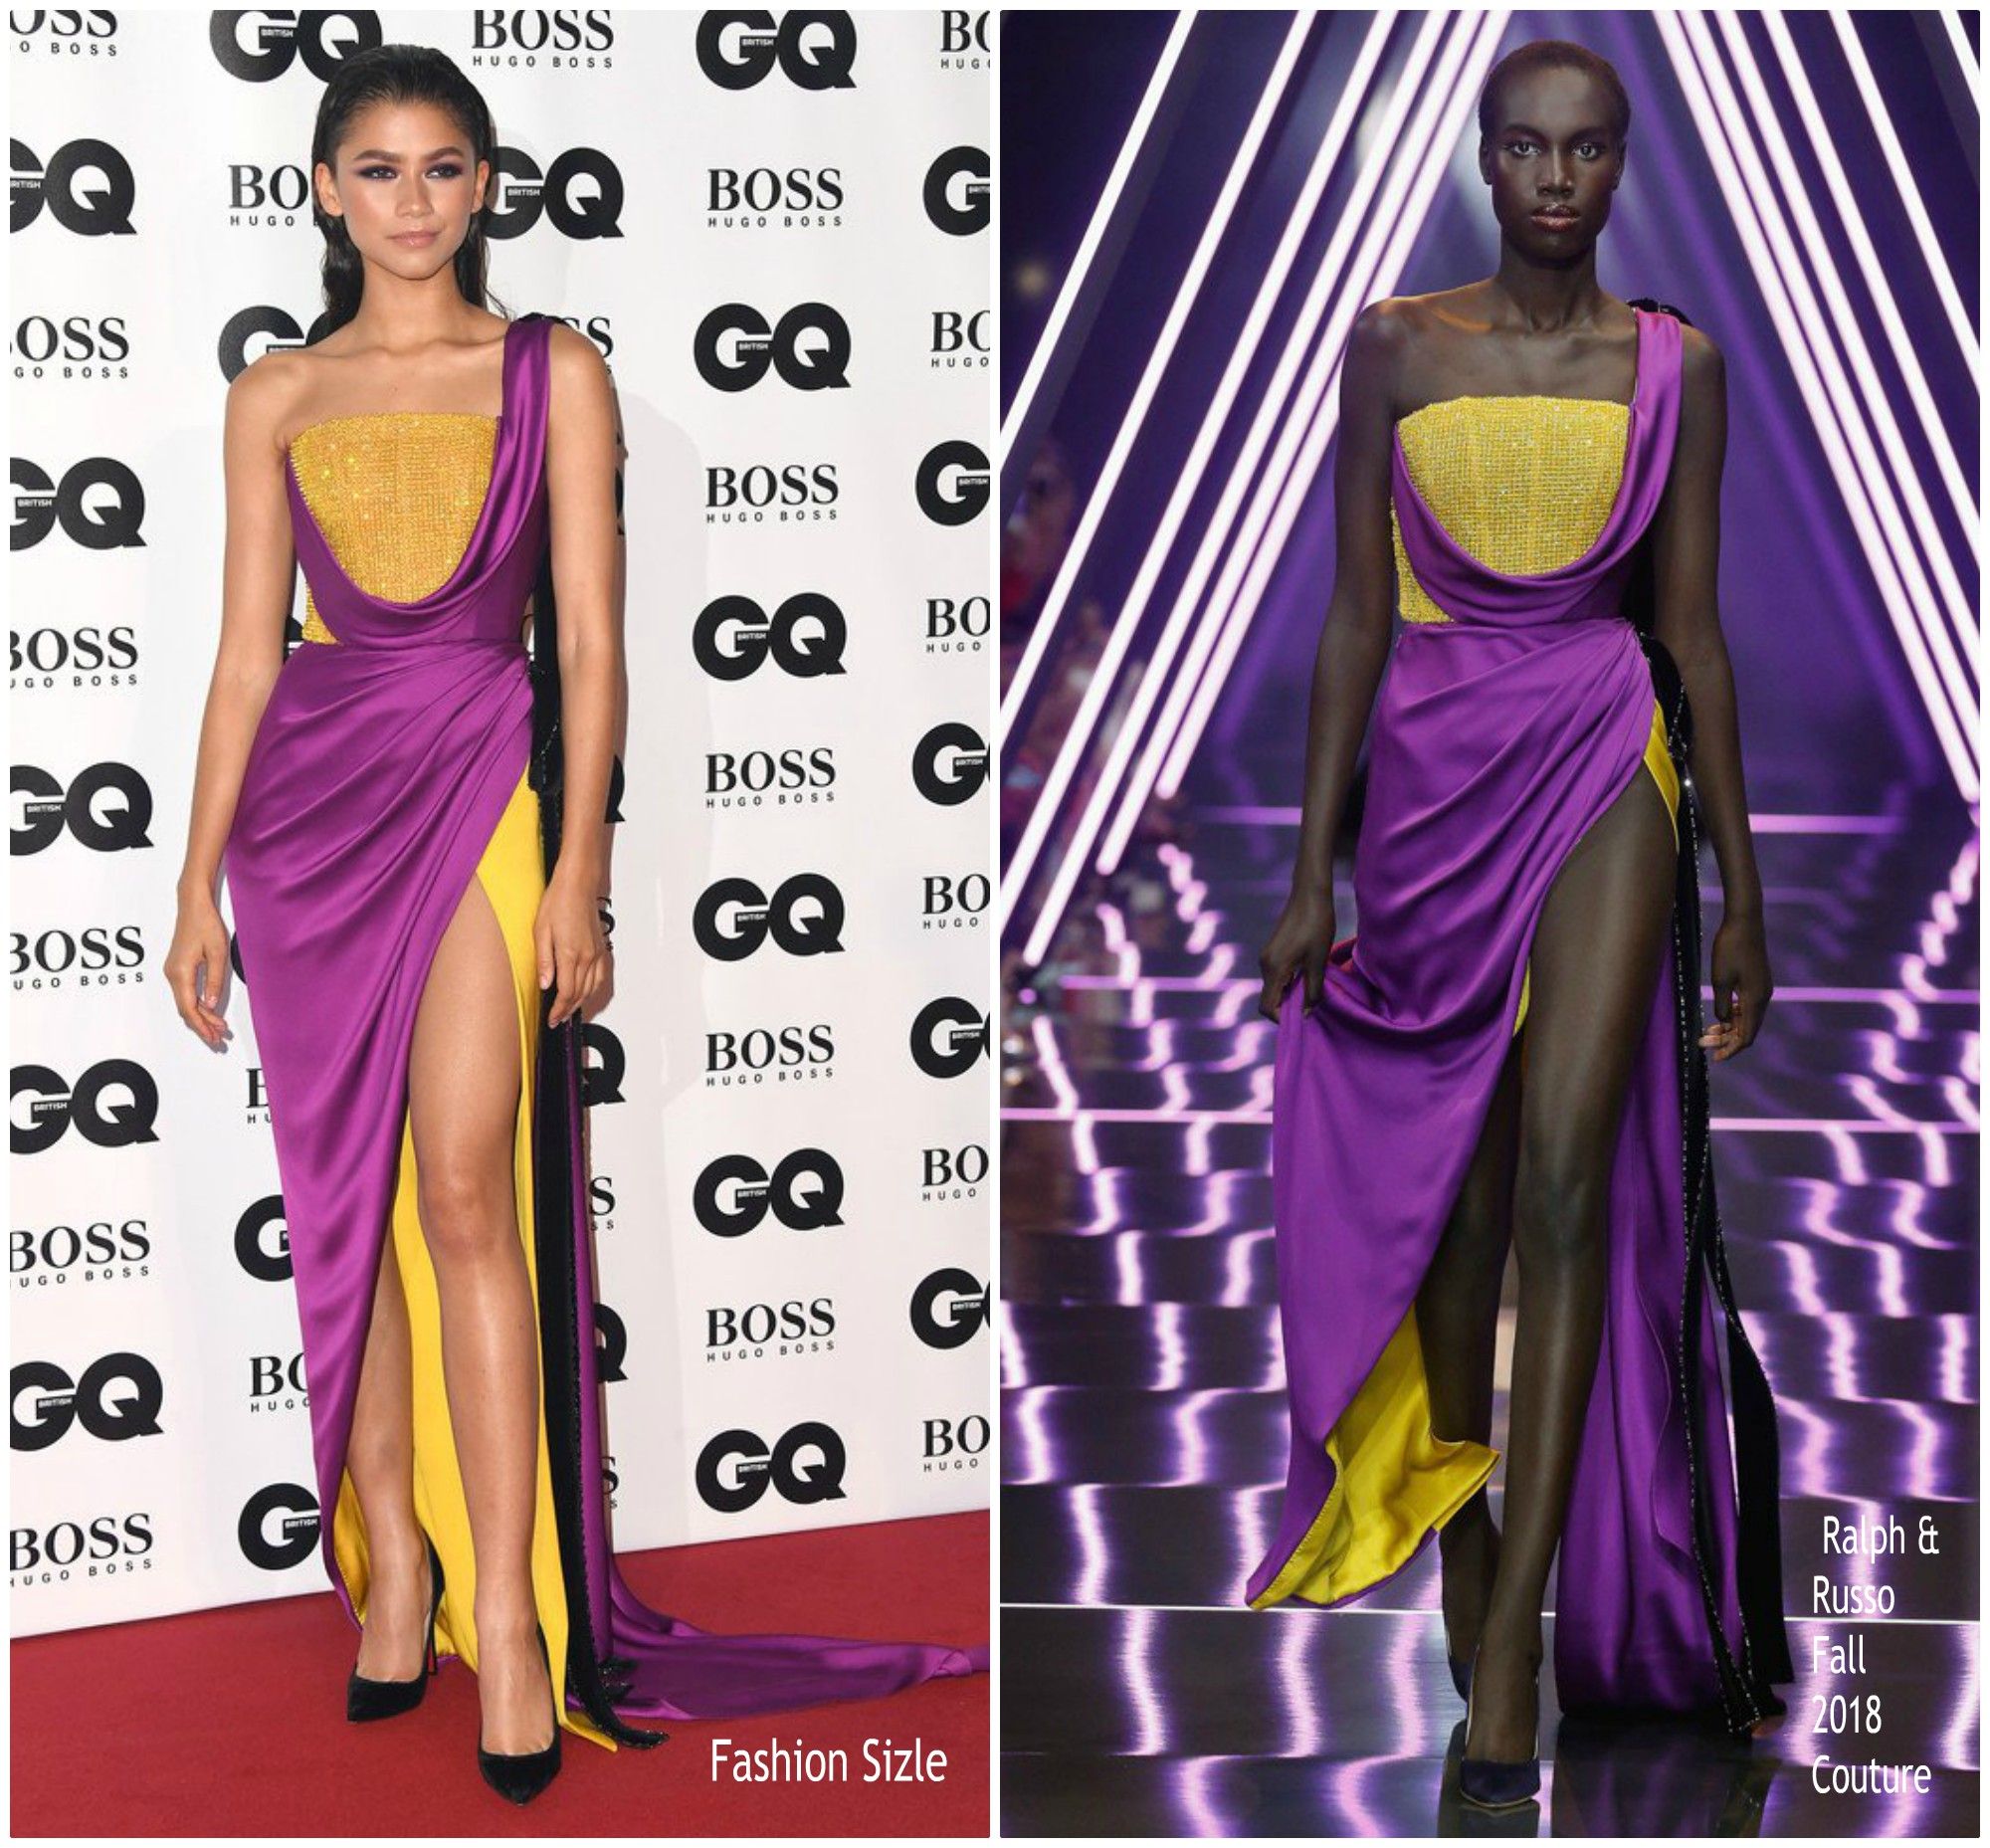 zendaya-coleman-in-ralph-russo-2018-gq-men-of-the-year-awards-in-london